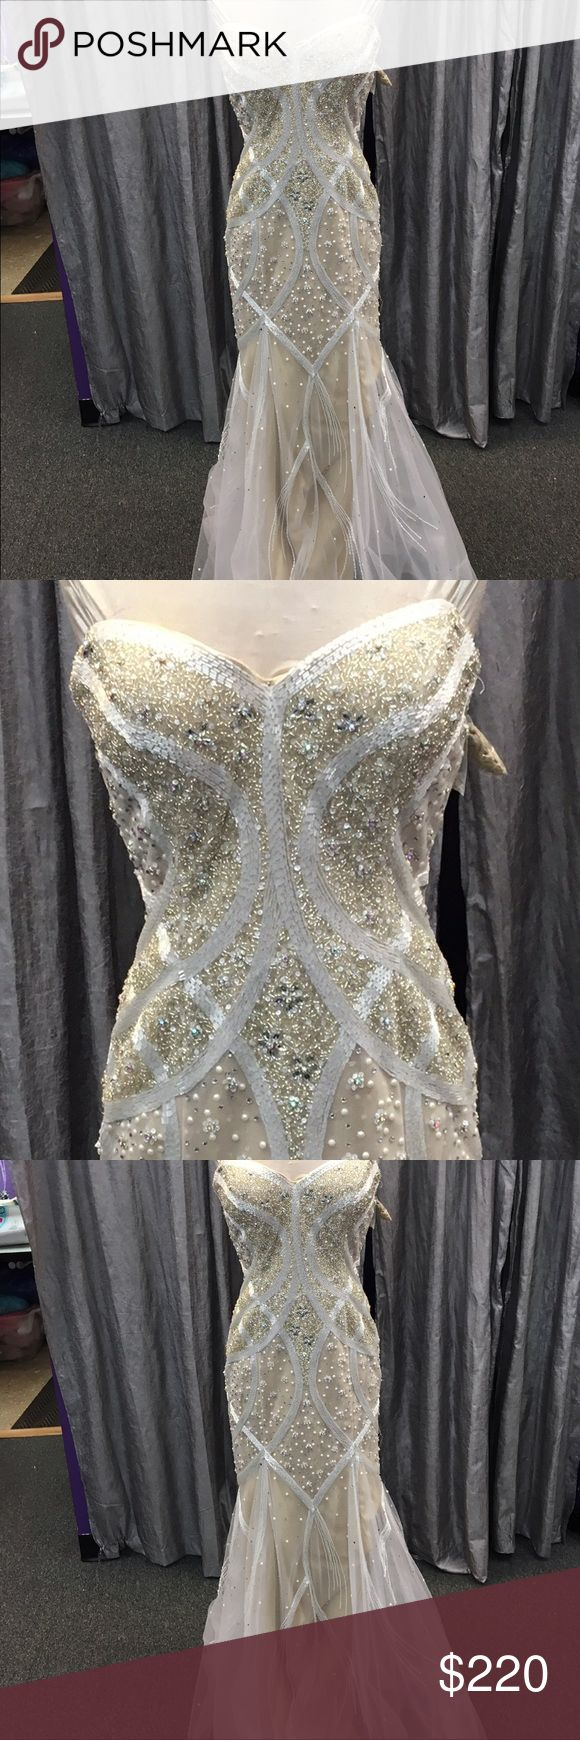 Panoply fully beaded gown Champagne gown with white beading and tulle on bottom. Great condition. panoply Dresses Prom